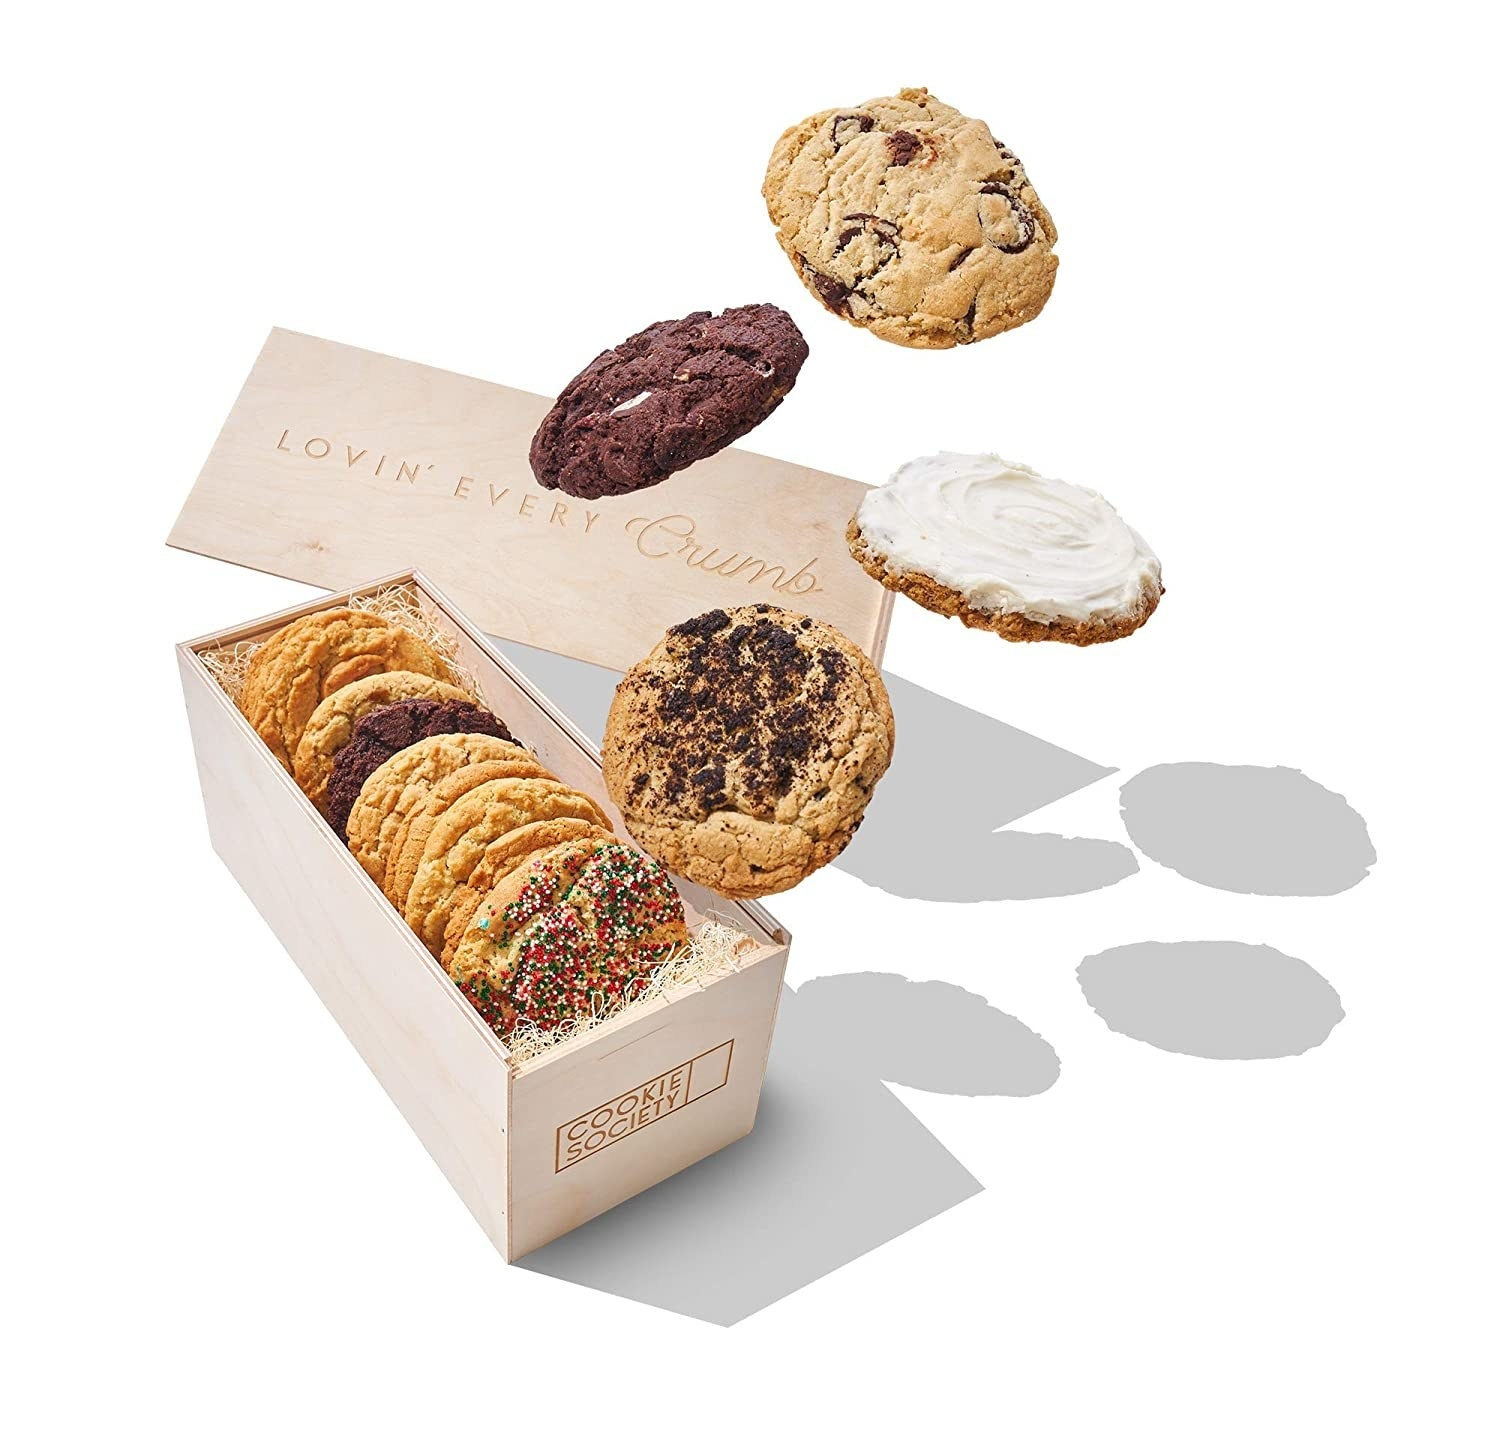 the cookie box set